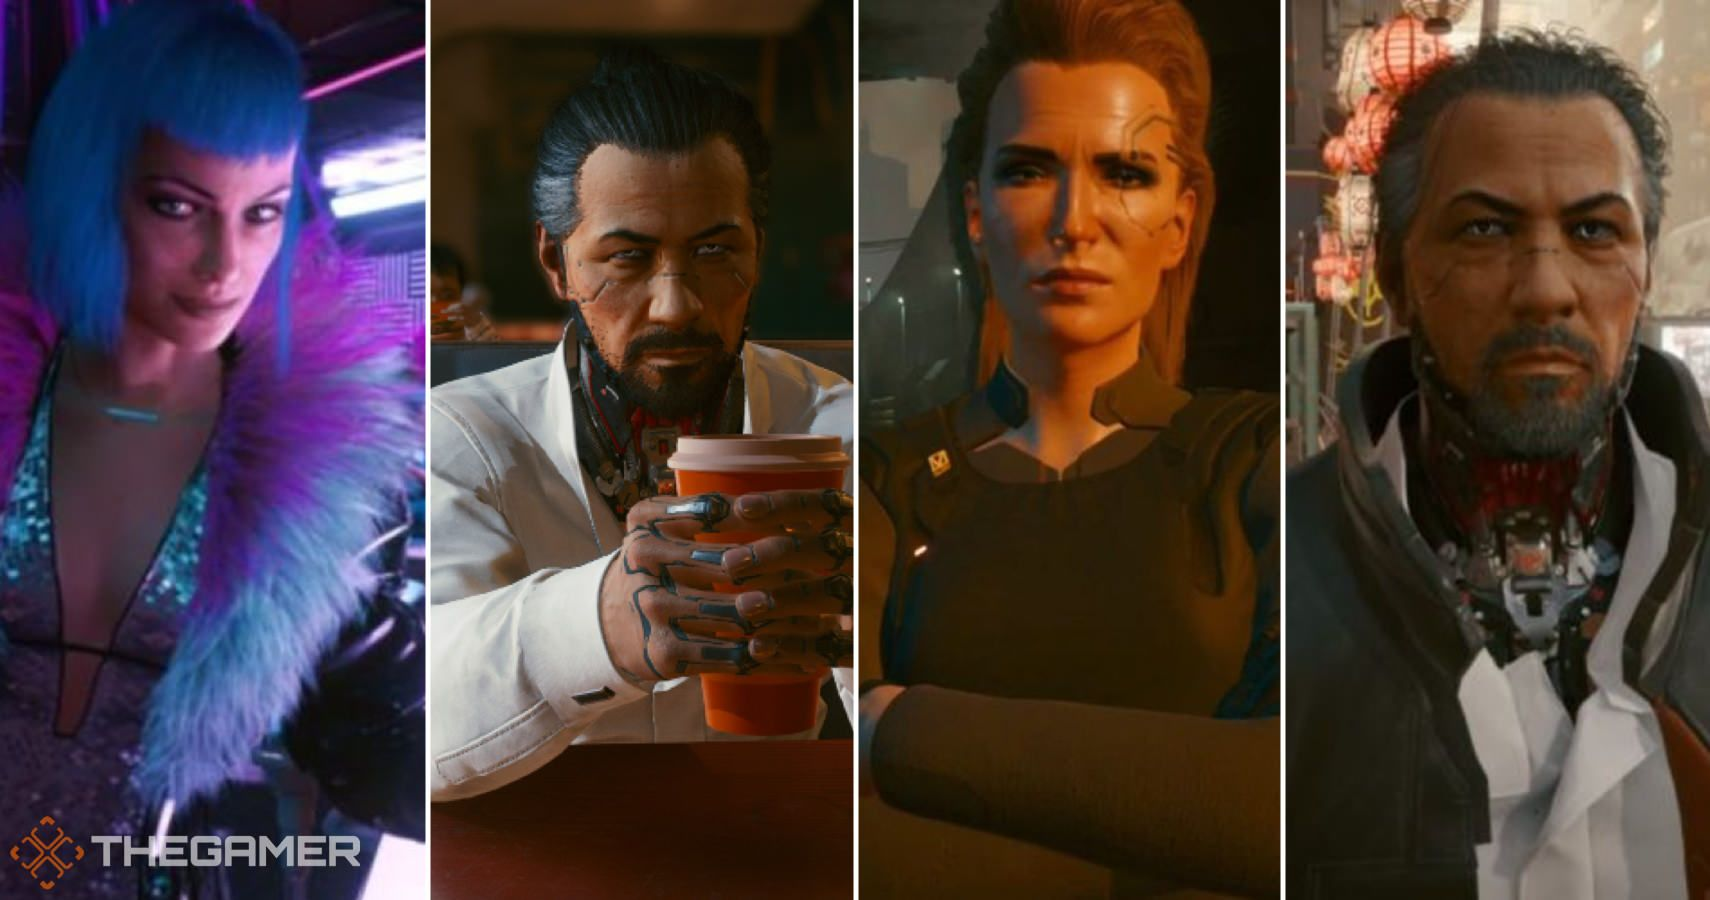 Cyberpunk 2077: Every Corpo Dialogue Option And Where You Can Choose It